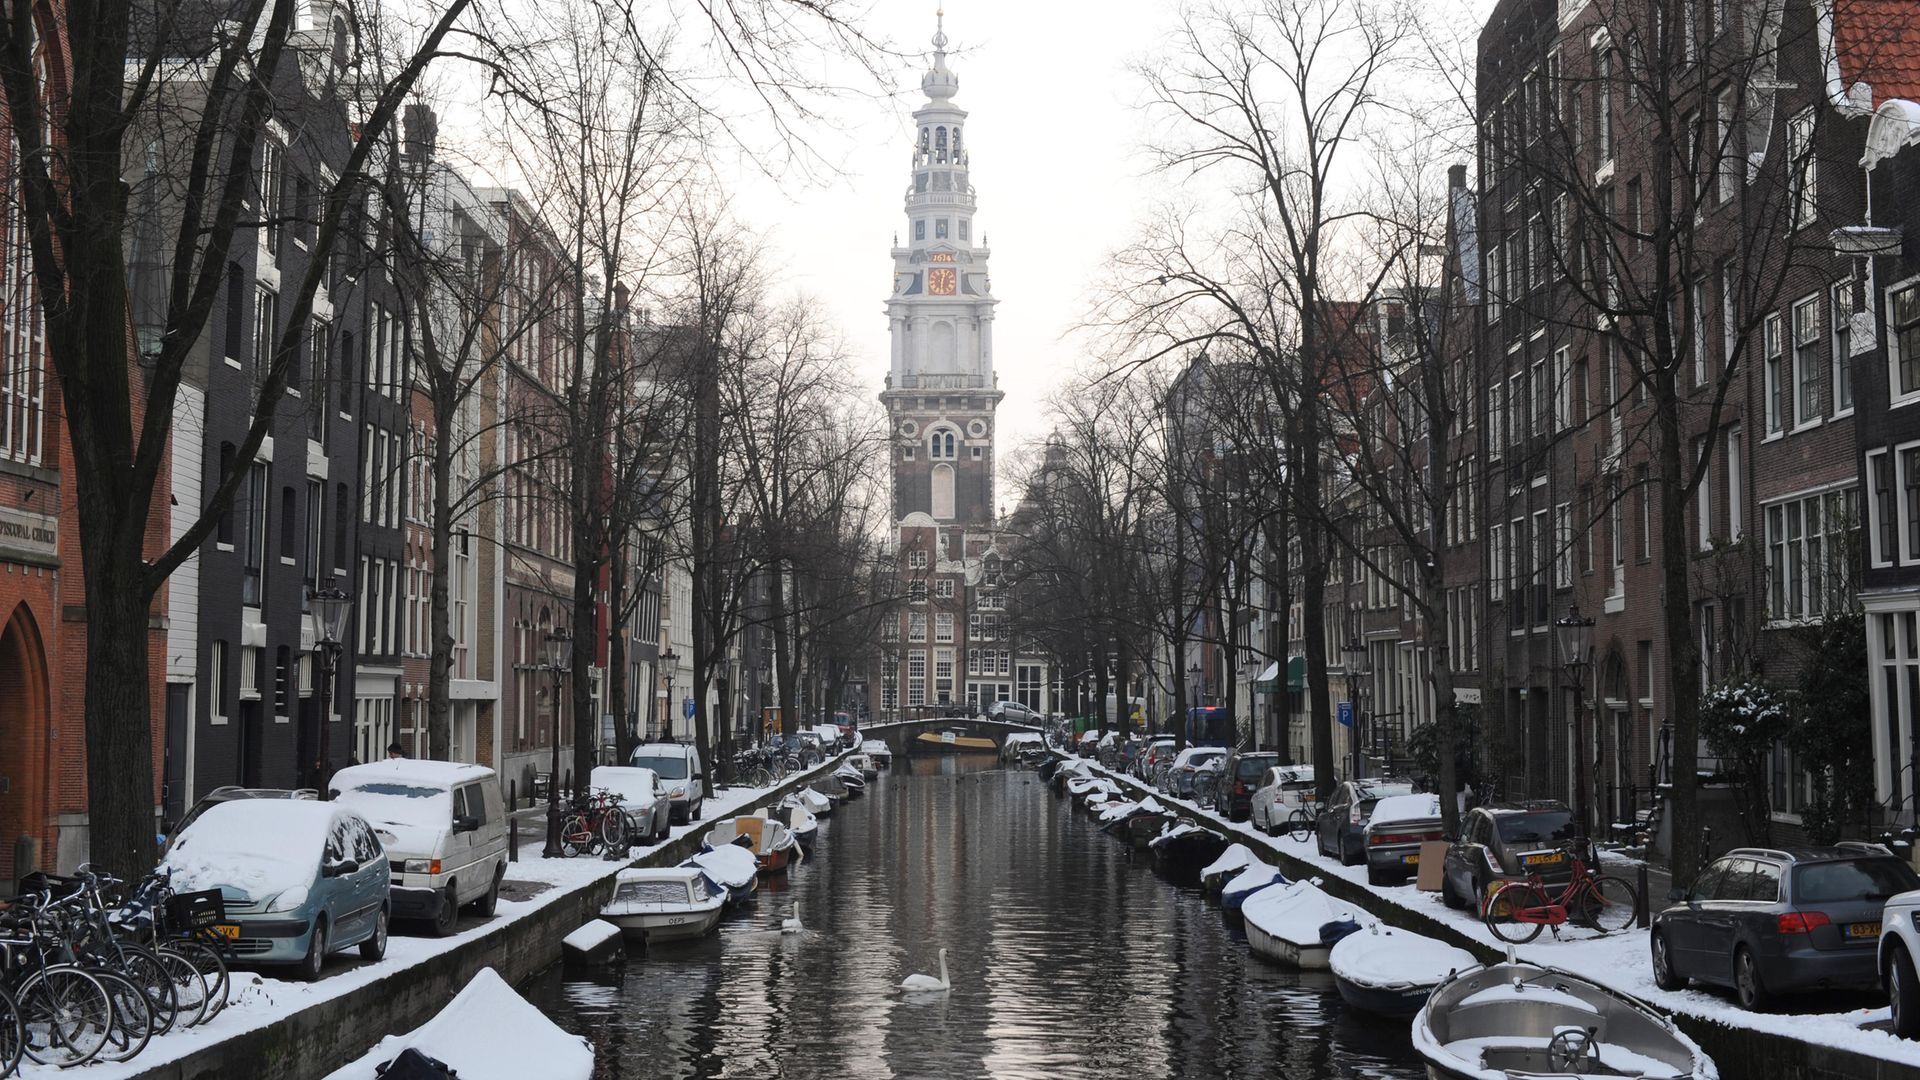 A view of the canal in Amsterdam - Credit: PA